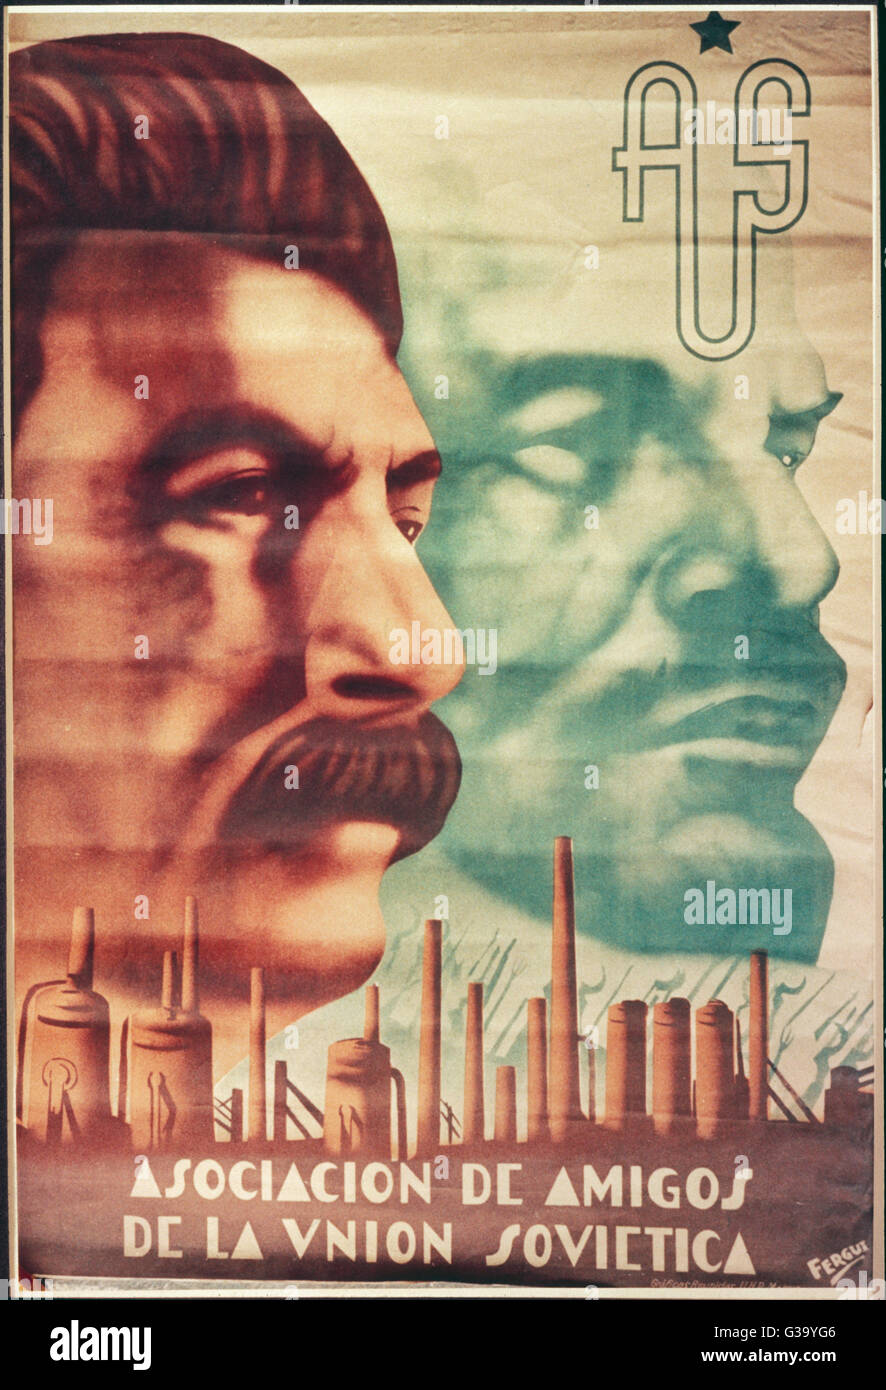 JOSEF STALIN  Soviet political leader,  with Lenin, on a poster of  the Spanish Association of  Friends of the Soviet - Stock Image